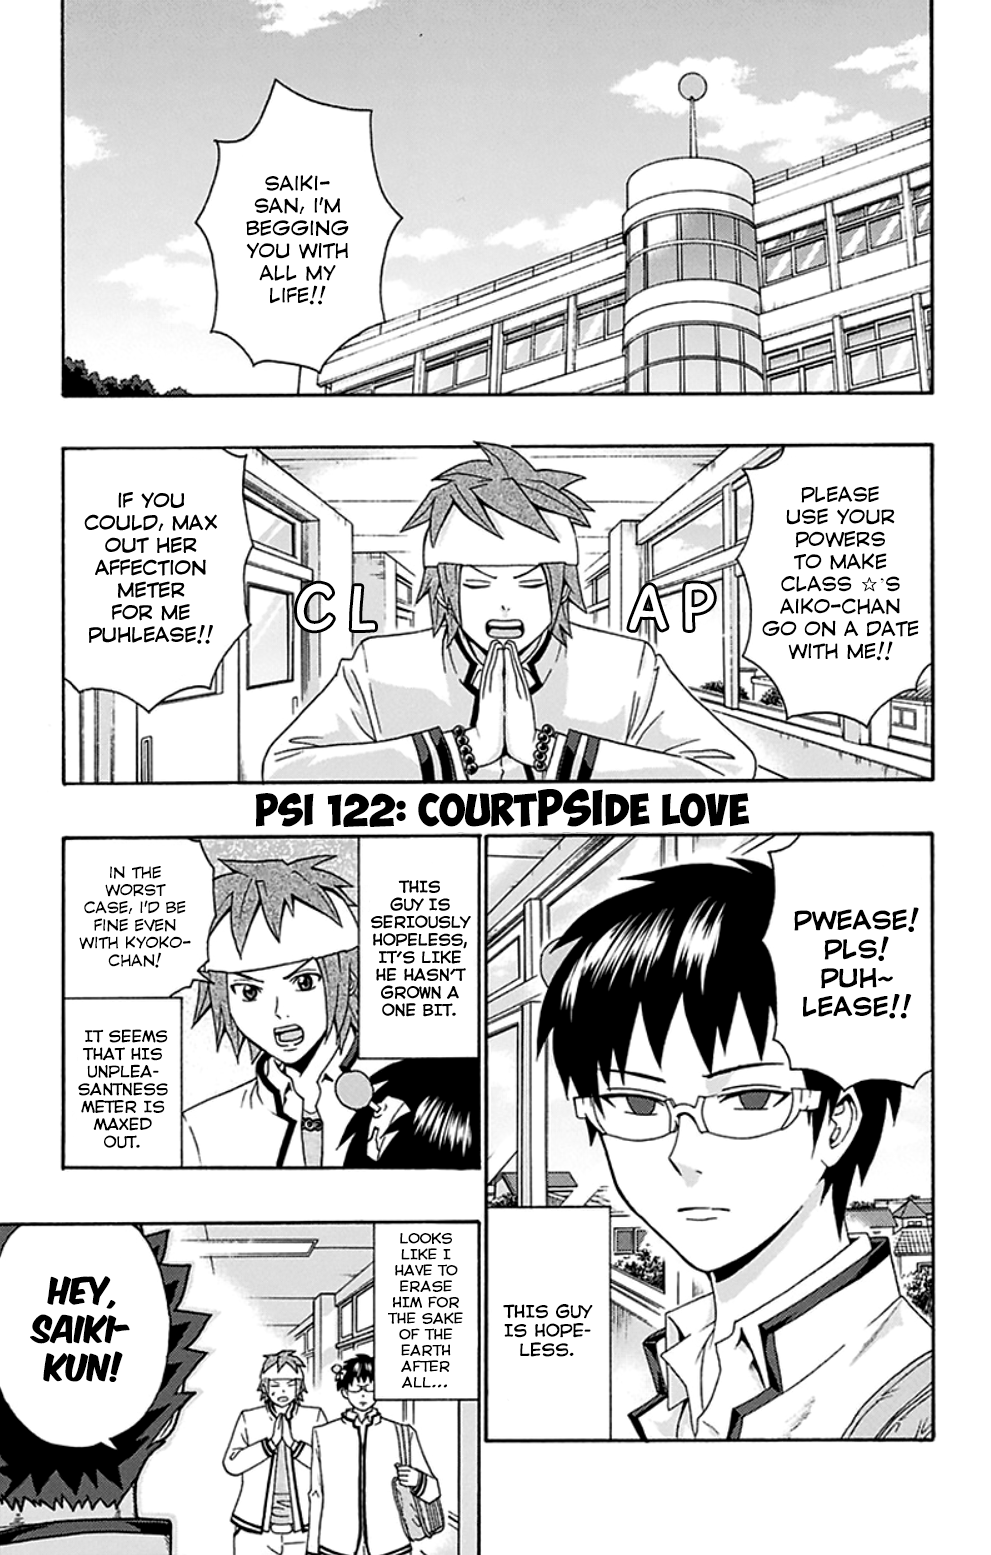 Saiki Kusuo no Psi Nan - CourtPSIde Love Game - 2